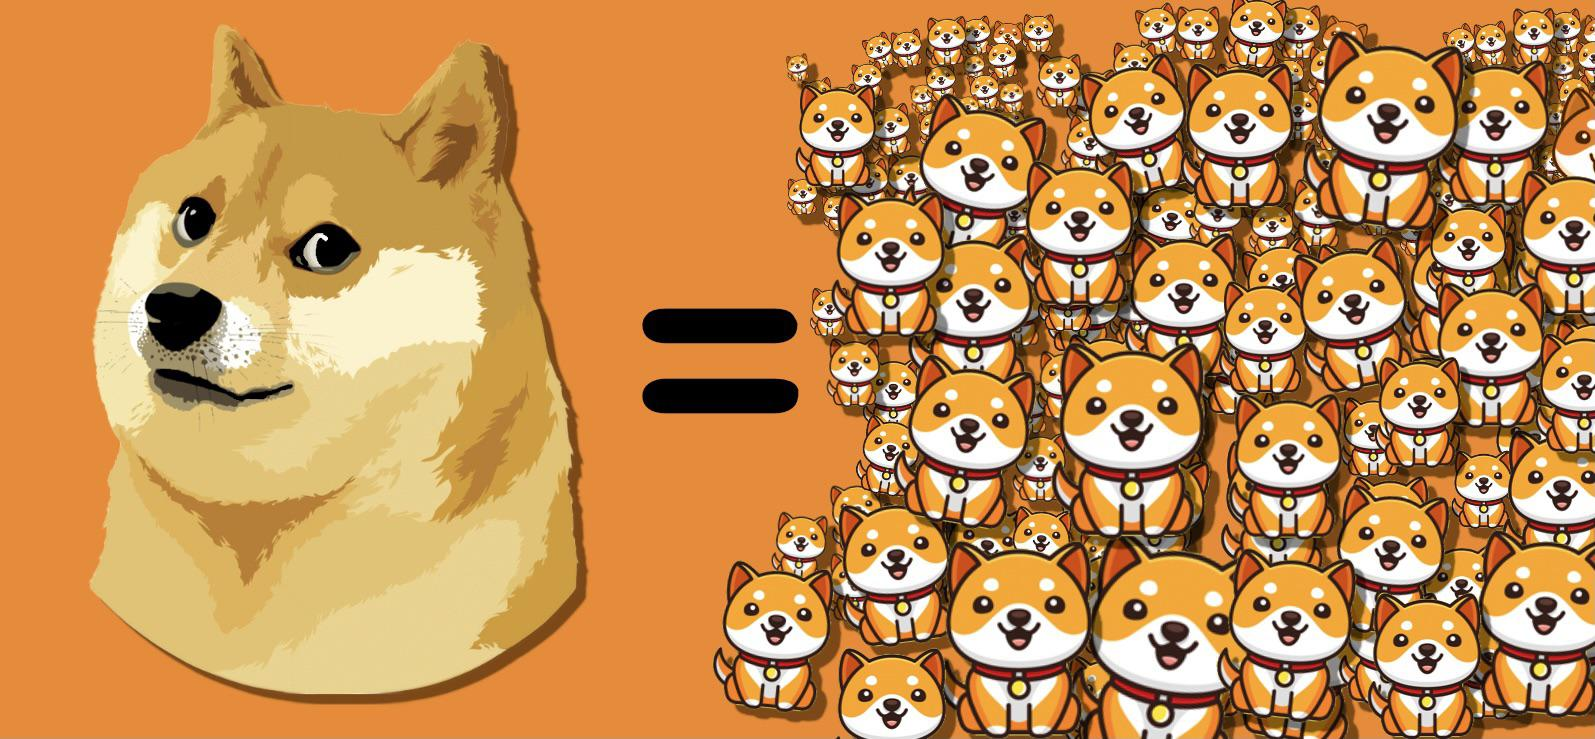 Top Reasons Why Baby Doge Is Getting The Hype